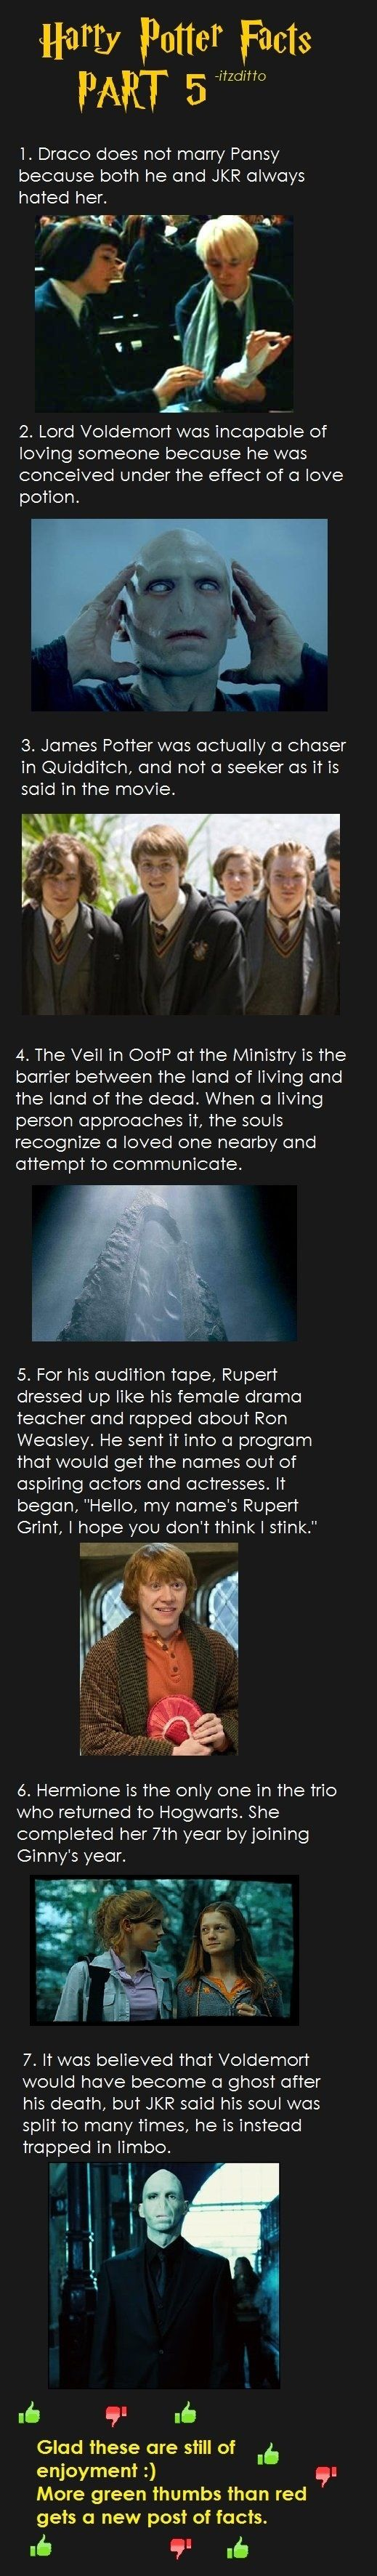 Harry Potter fun facts part 5.  - don't know if they're all true but I like 'em.